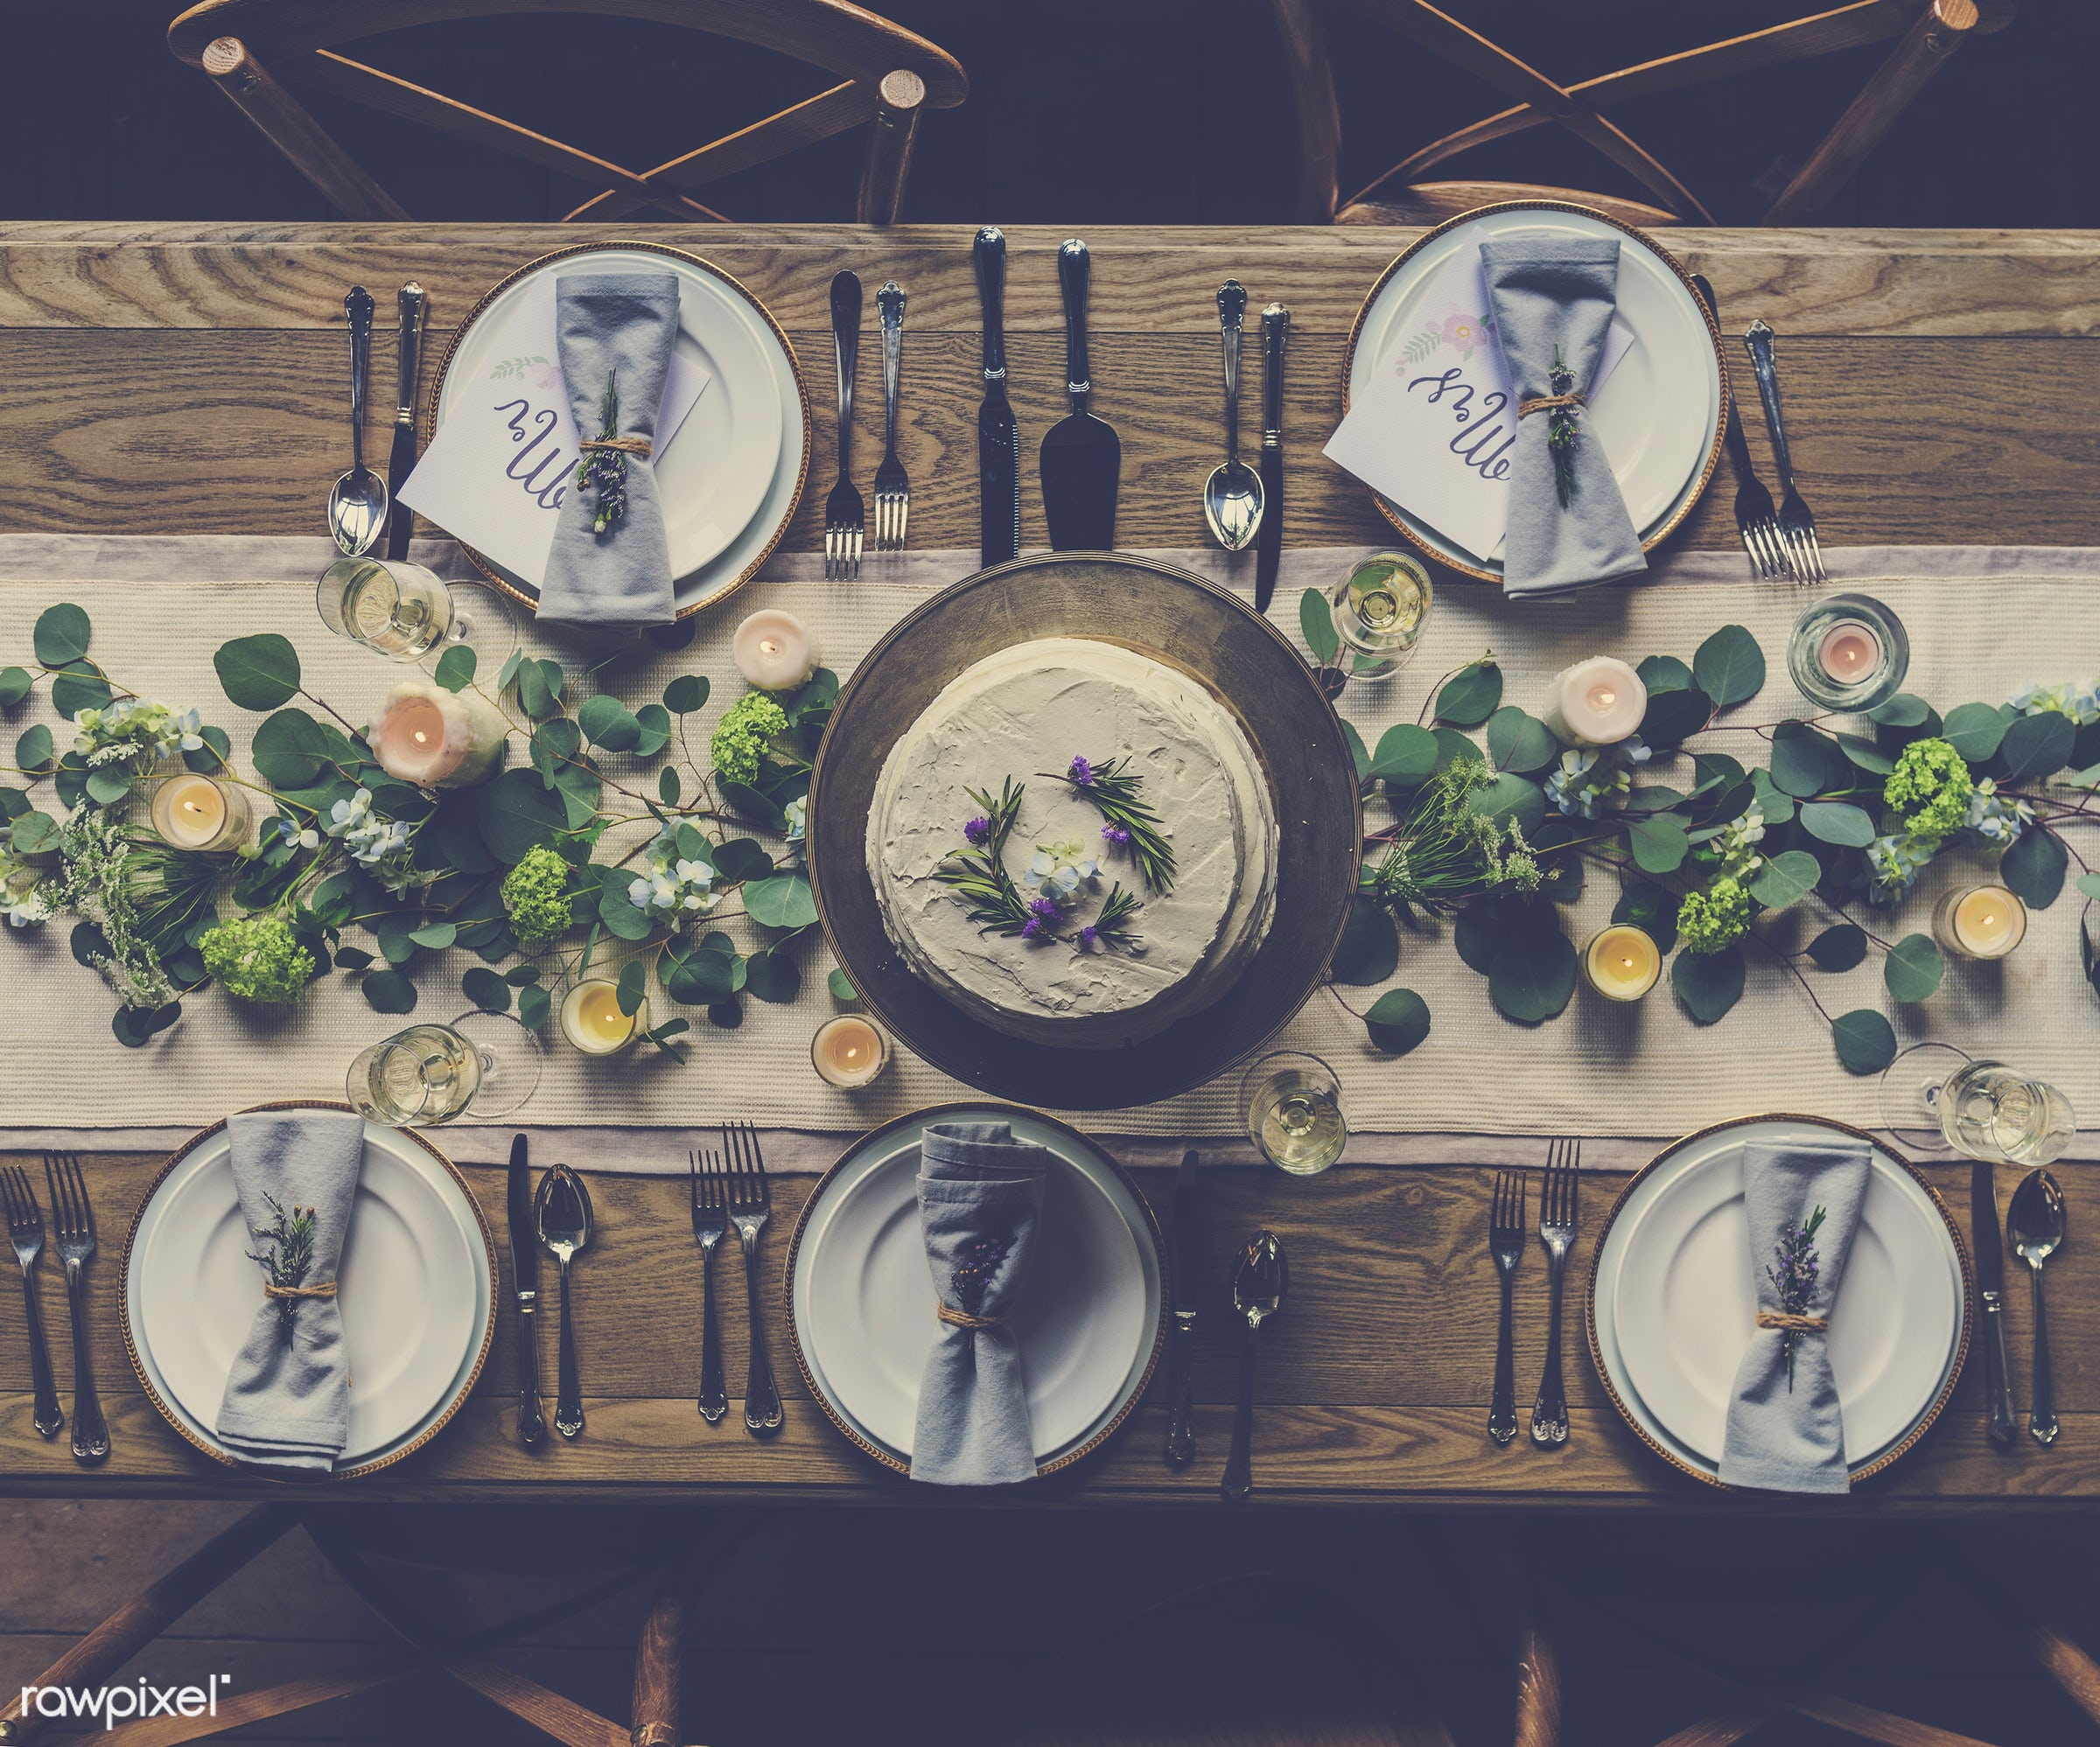 nobody, ornate, catering, silverware, restaurant, party, setting, decor, candle, tablecloth, event, banquet, lunch, meal,...